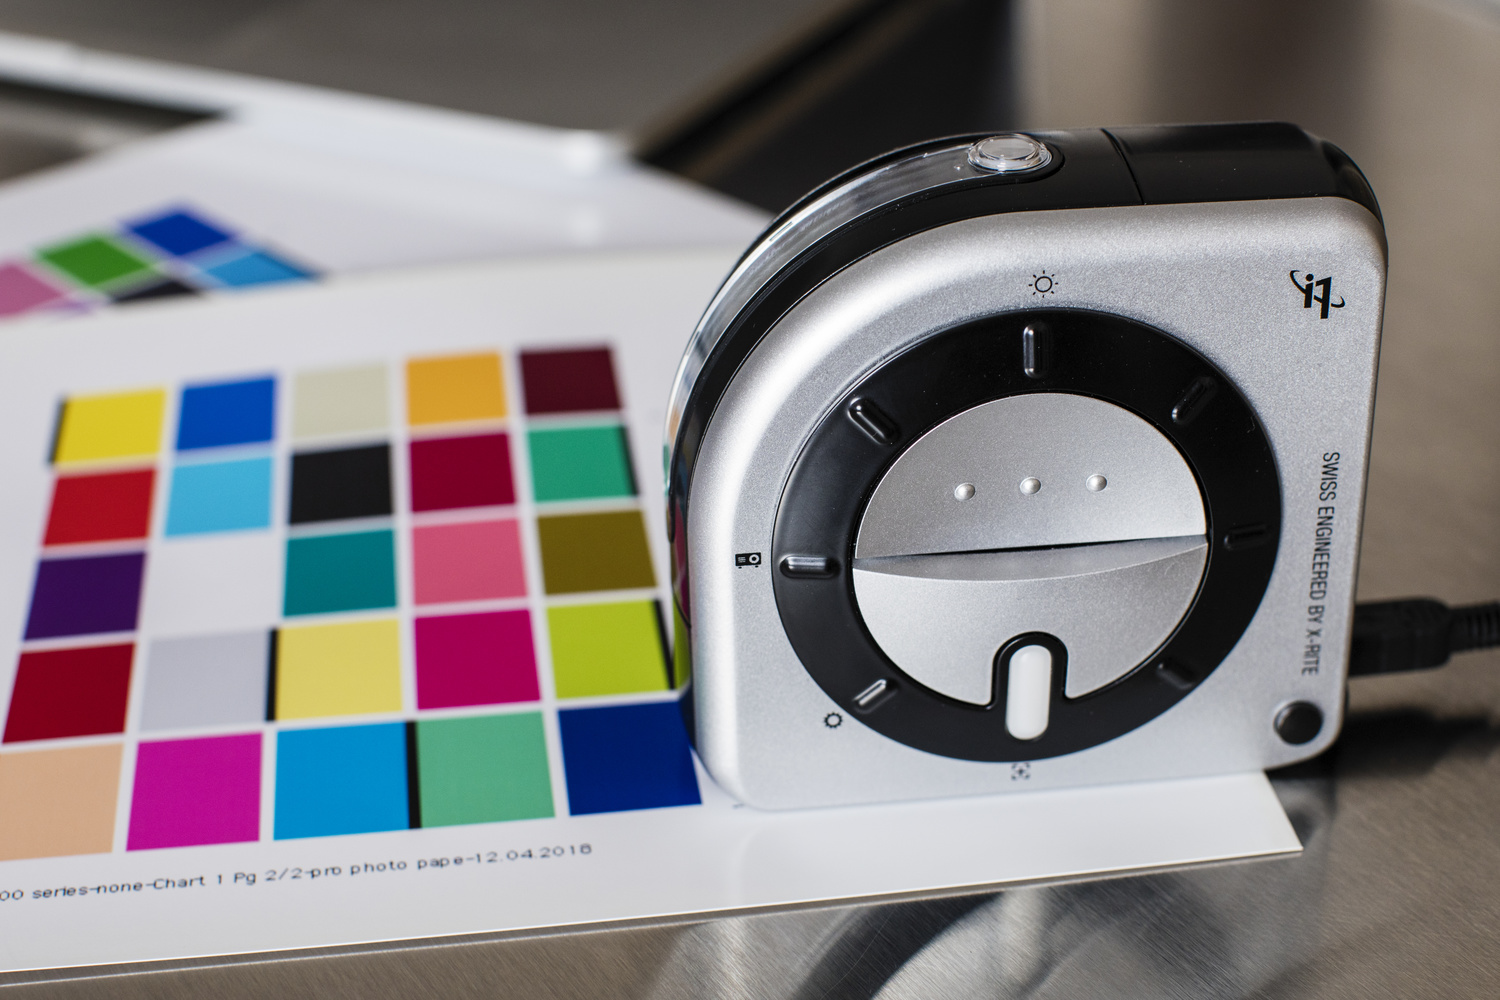 Printer profiling is quick and easy with the X-Rite i1Studio.